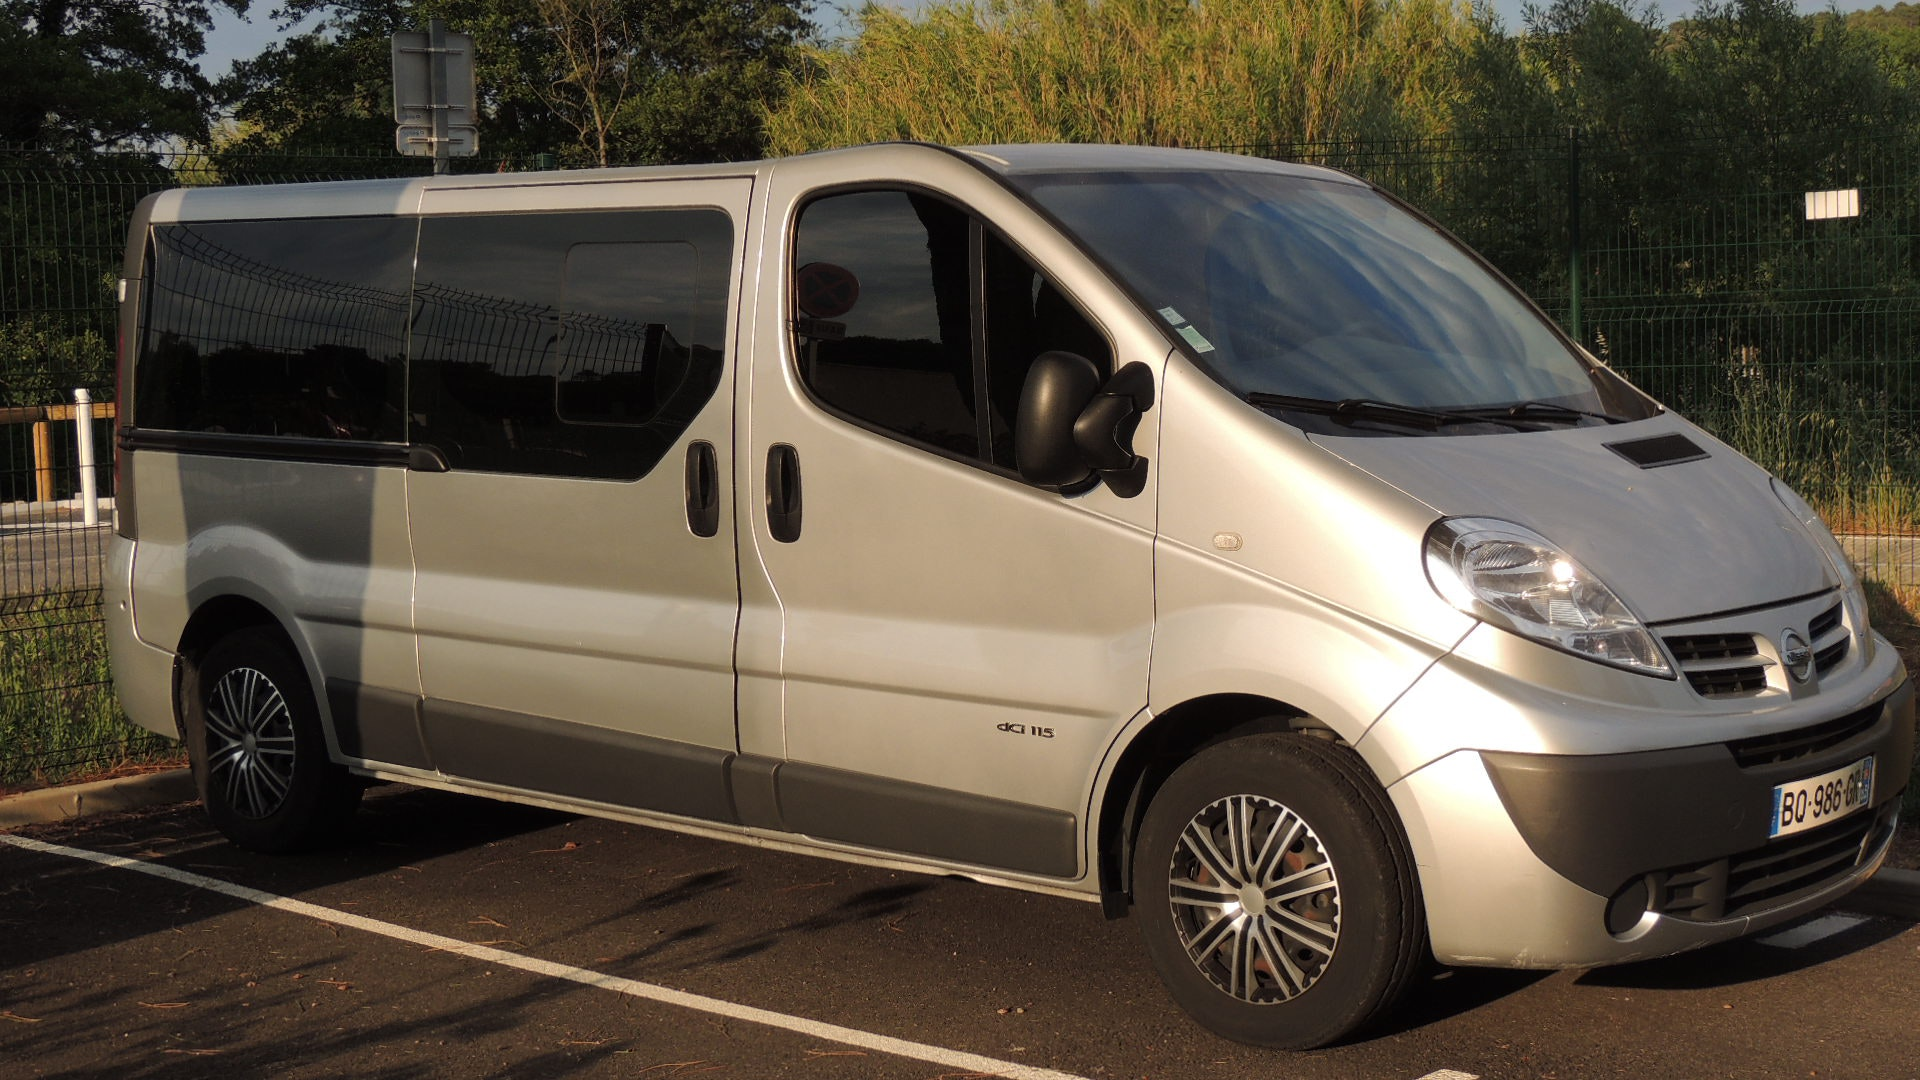 Nissan Primastar Minibus 9 Places DCI 115 cv chassis long, 2011, Diesel, 9 places et plus